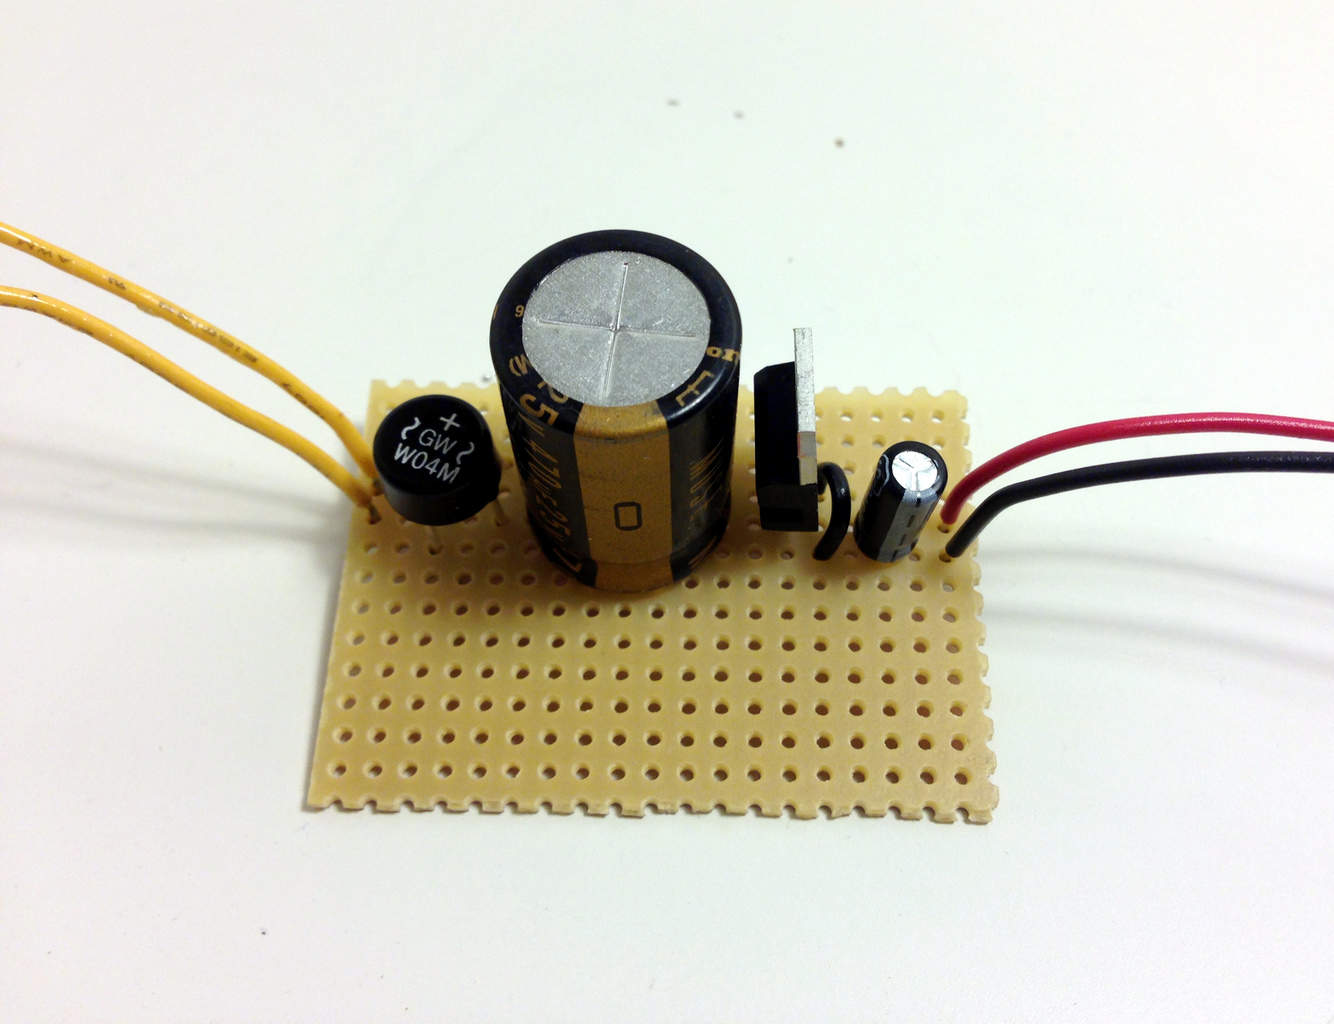 Wondrous The Simplest Power Supply Circuit Build Electronic Circuits Wiring Cloud Uslyletkolfr09Org